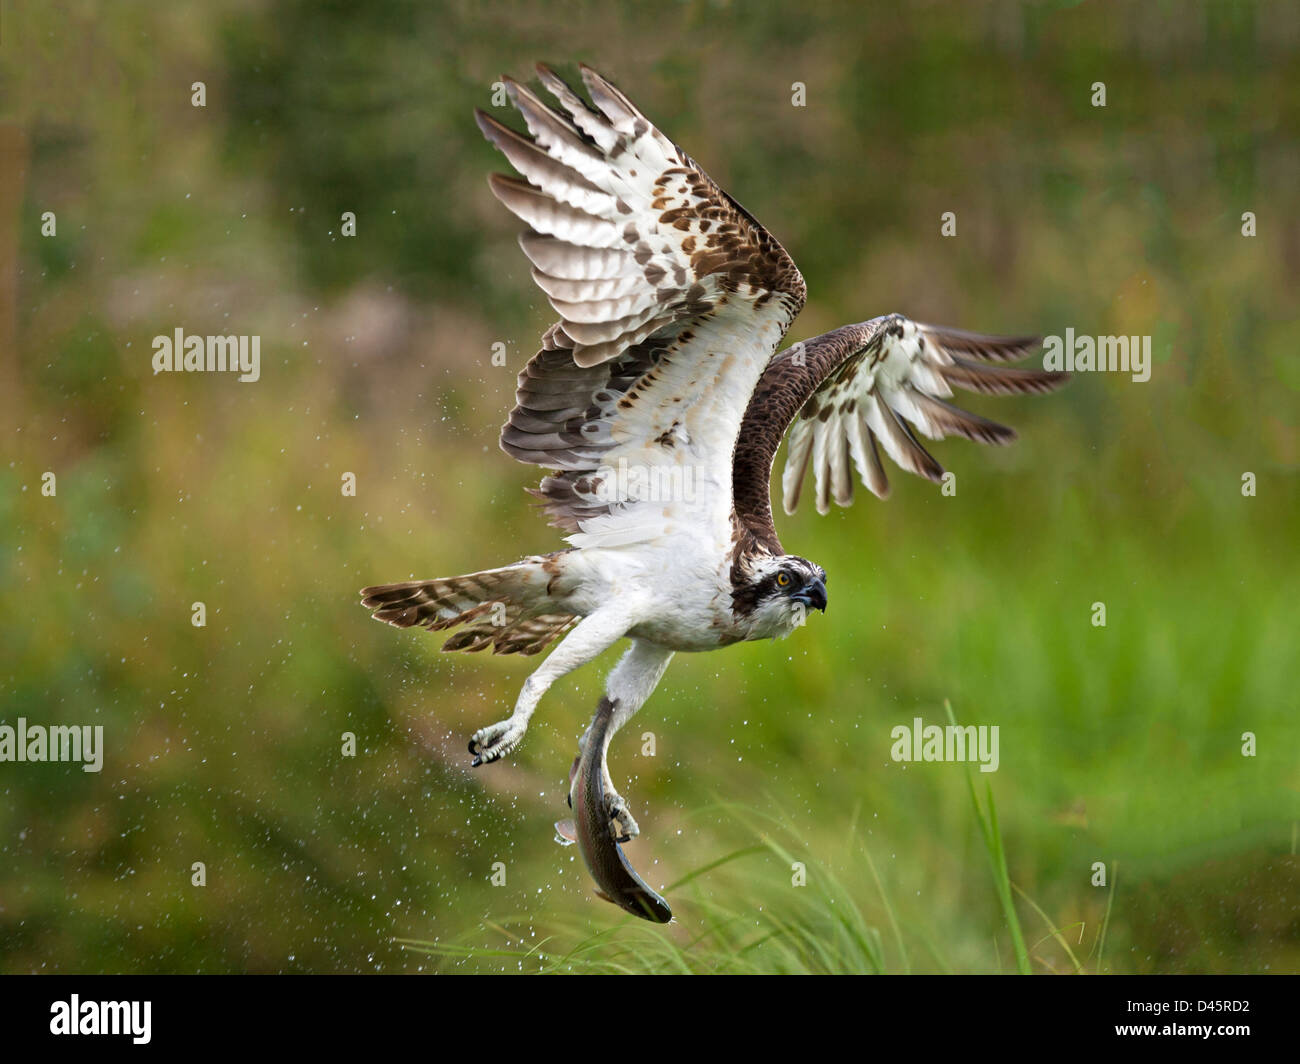 Osprey in flight with fish in talons - Stock Image